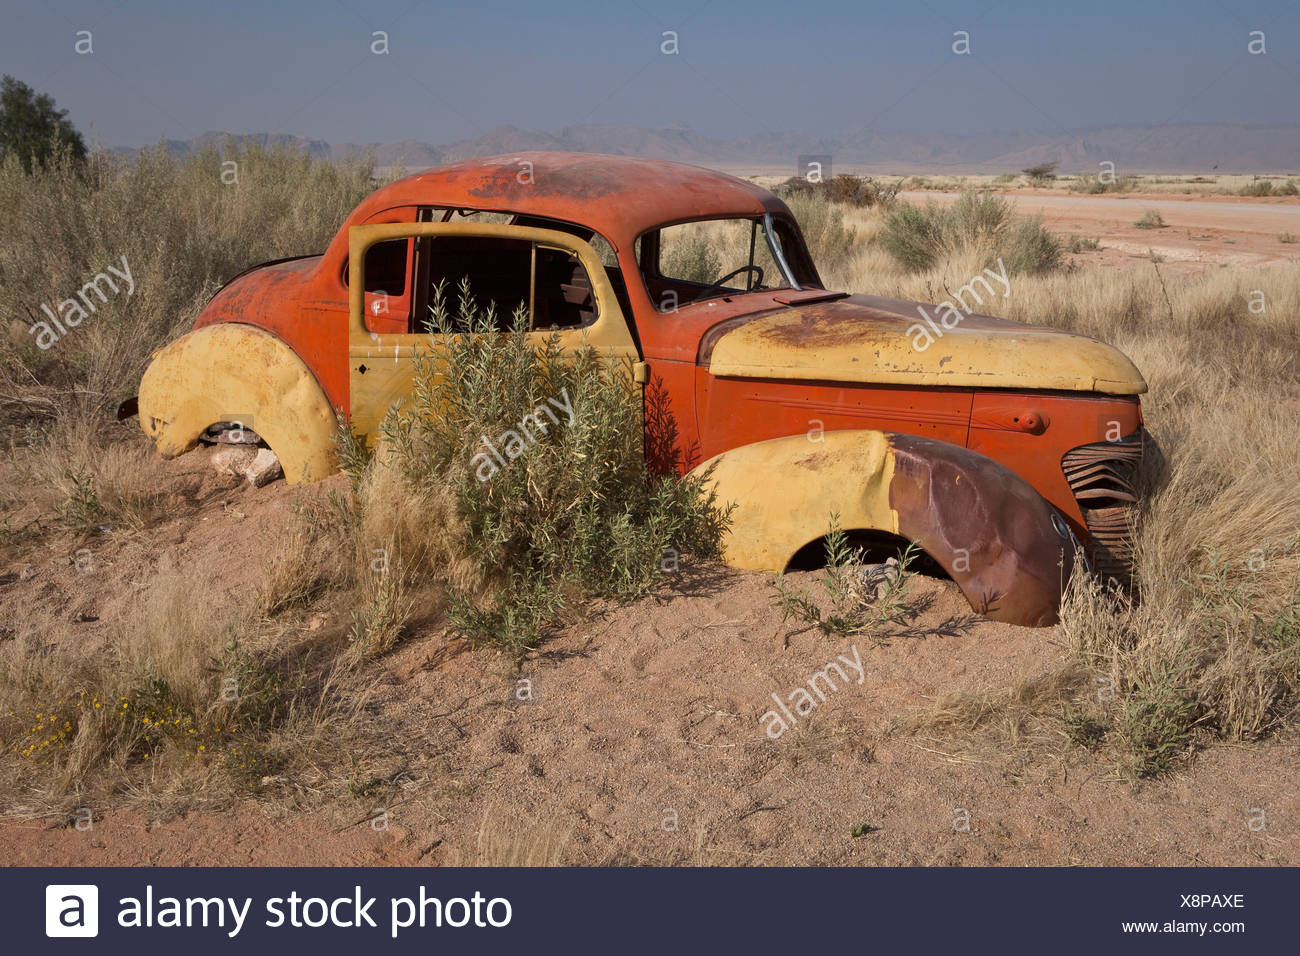 Rusting car submerged in sand - Stock Image